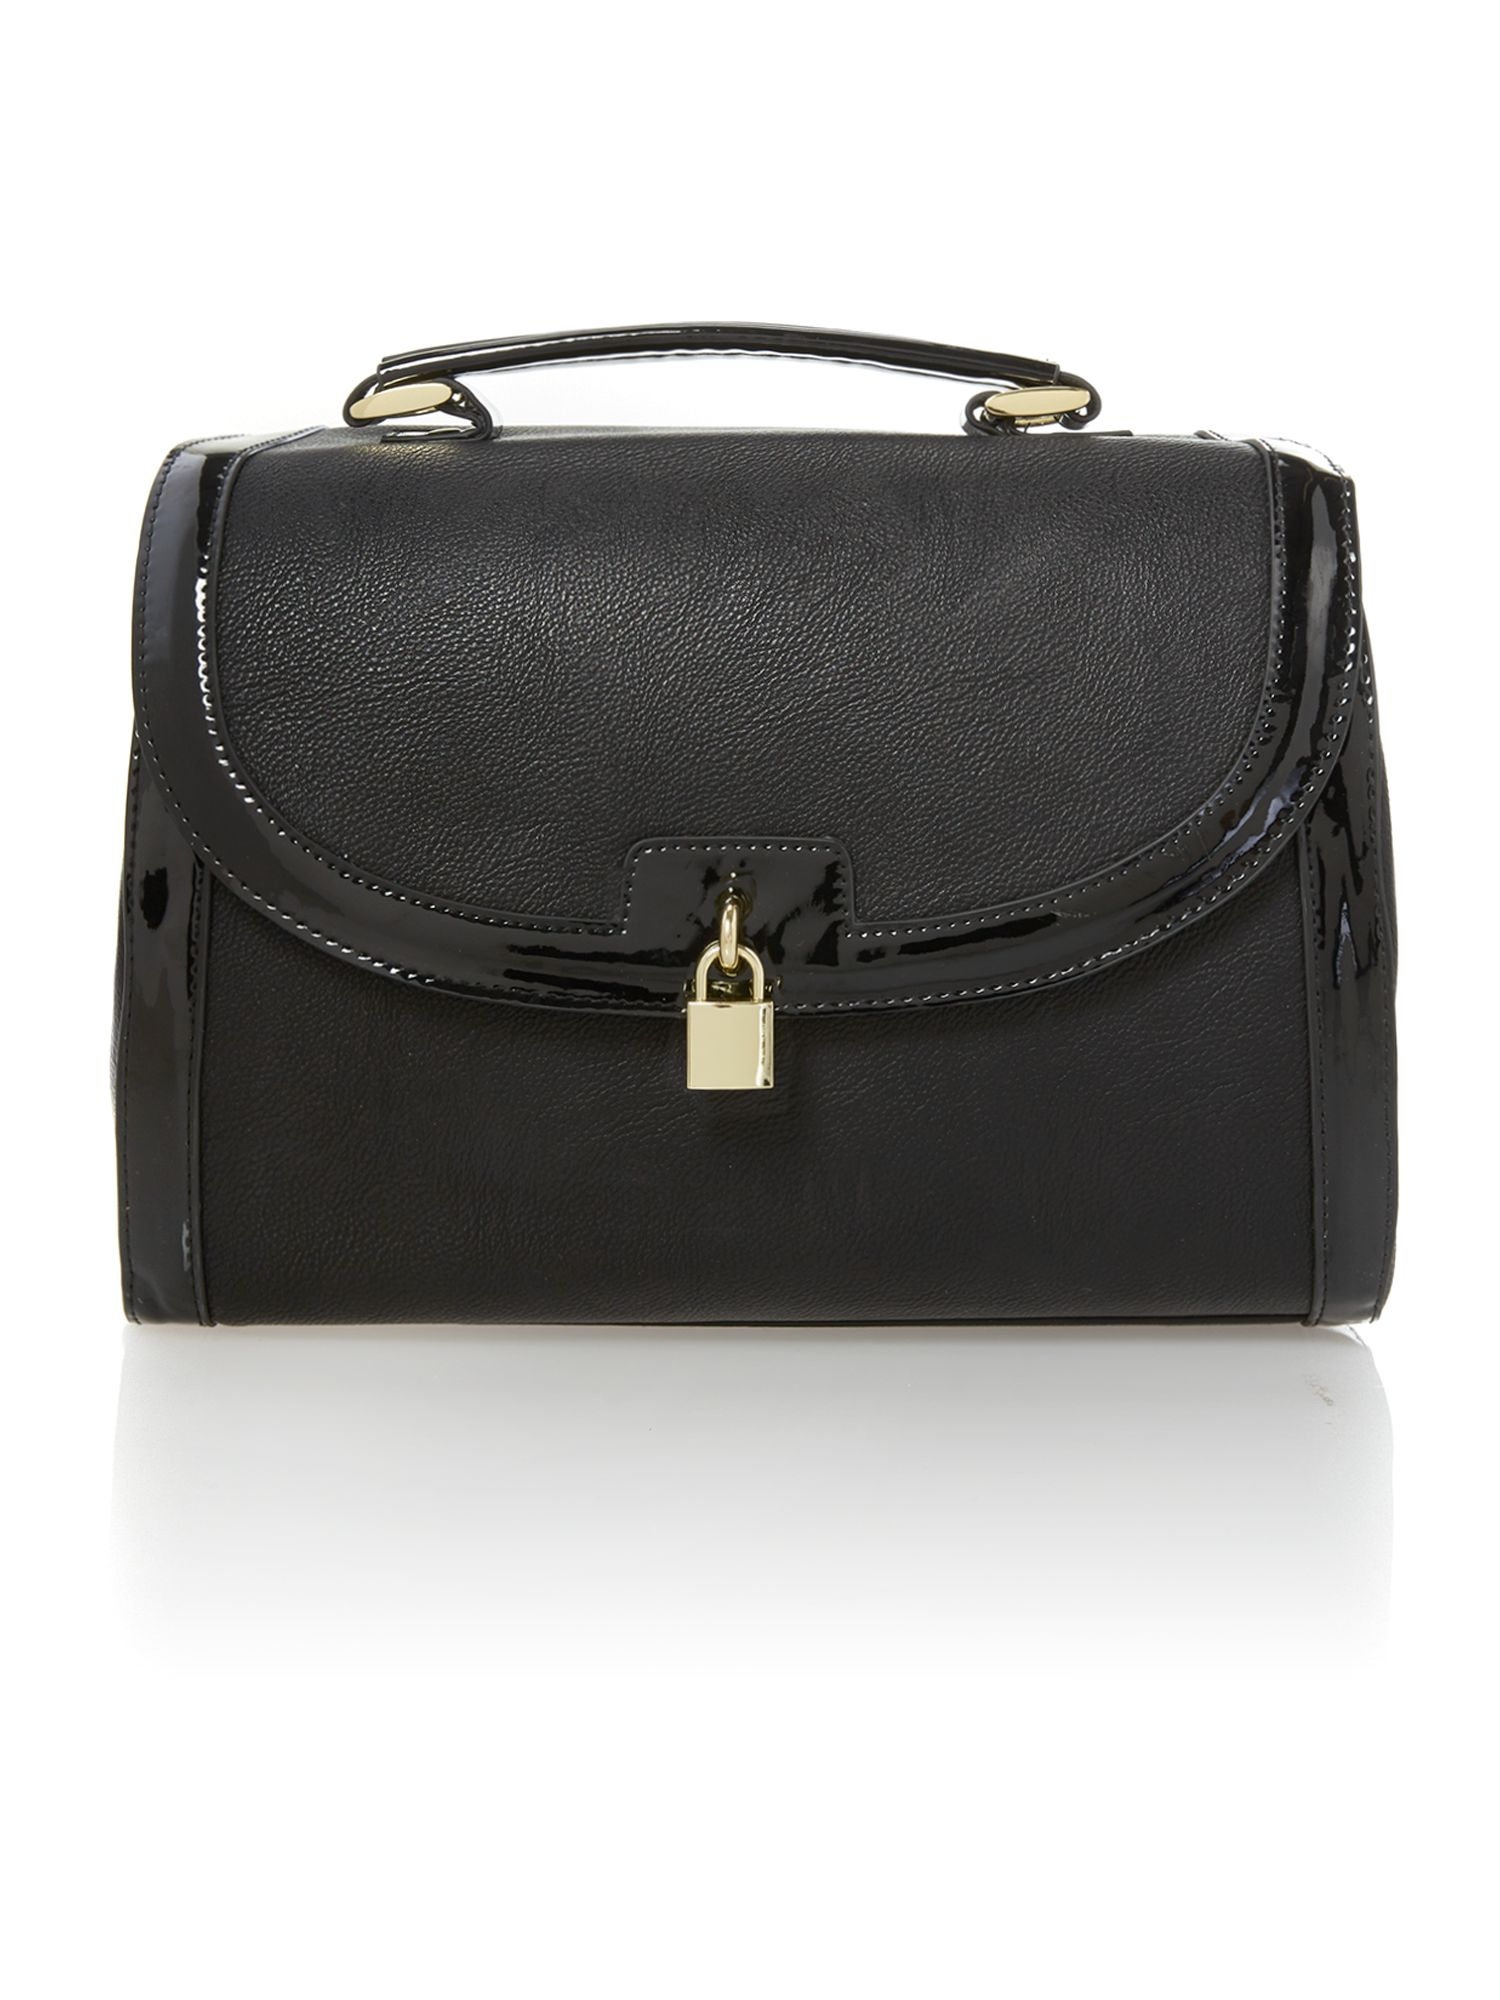 Emily top handle handbag